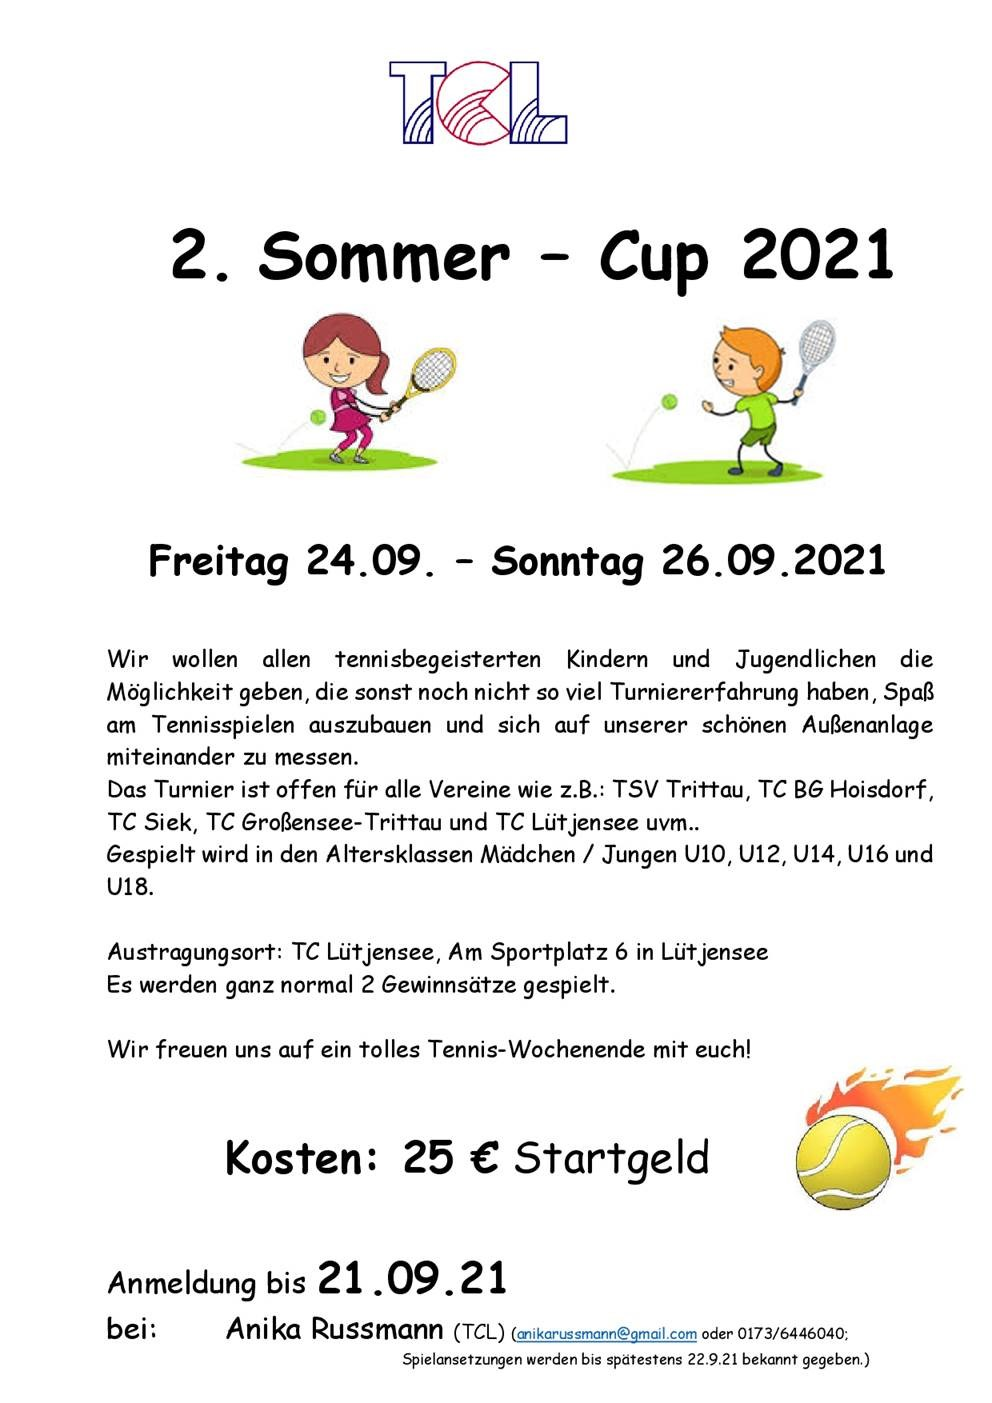 2. TCL Sommer-Cup 2021 - 24.-26.09.2021